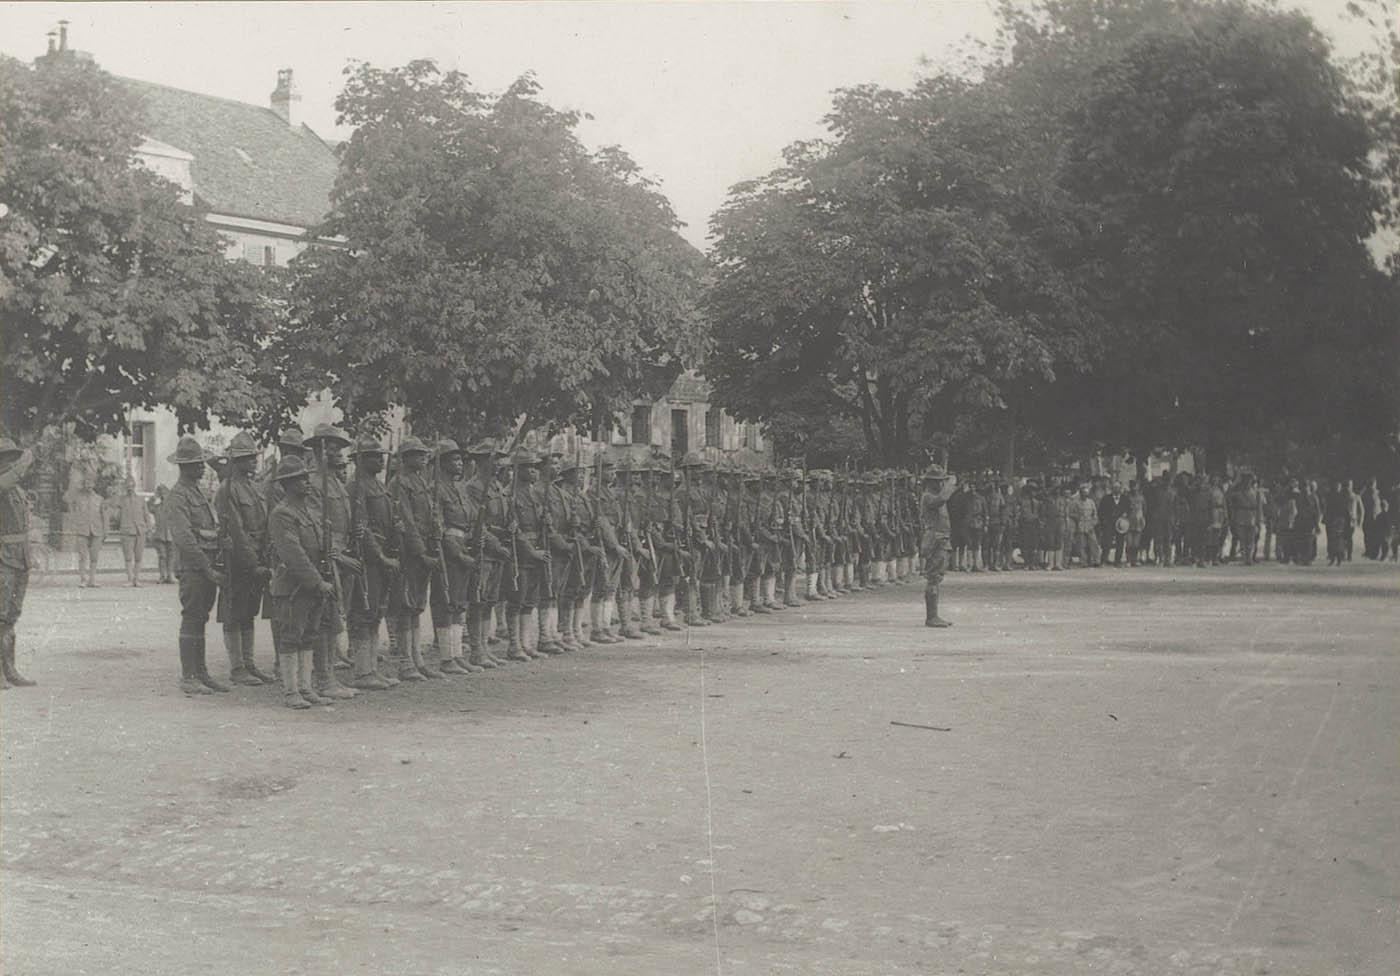 The 370th Infantry Regiment in France